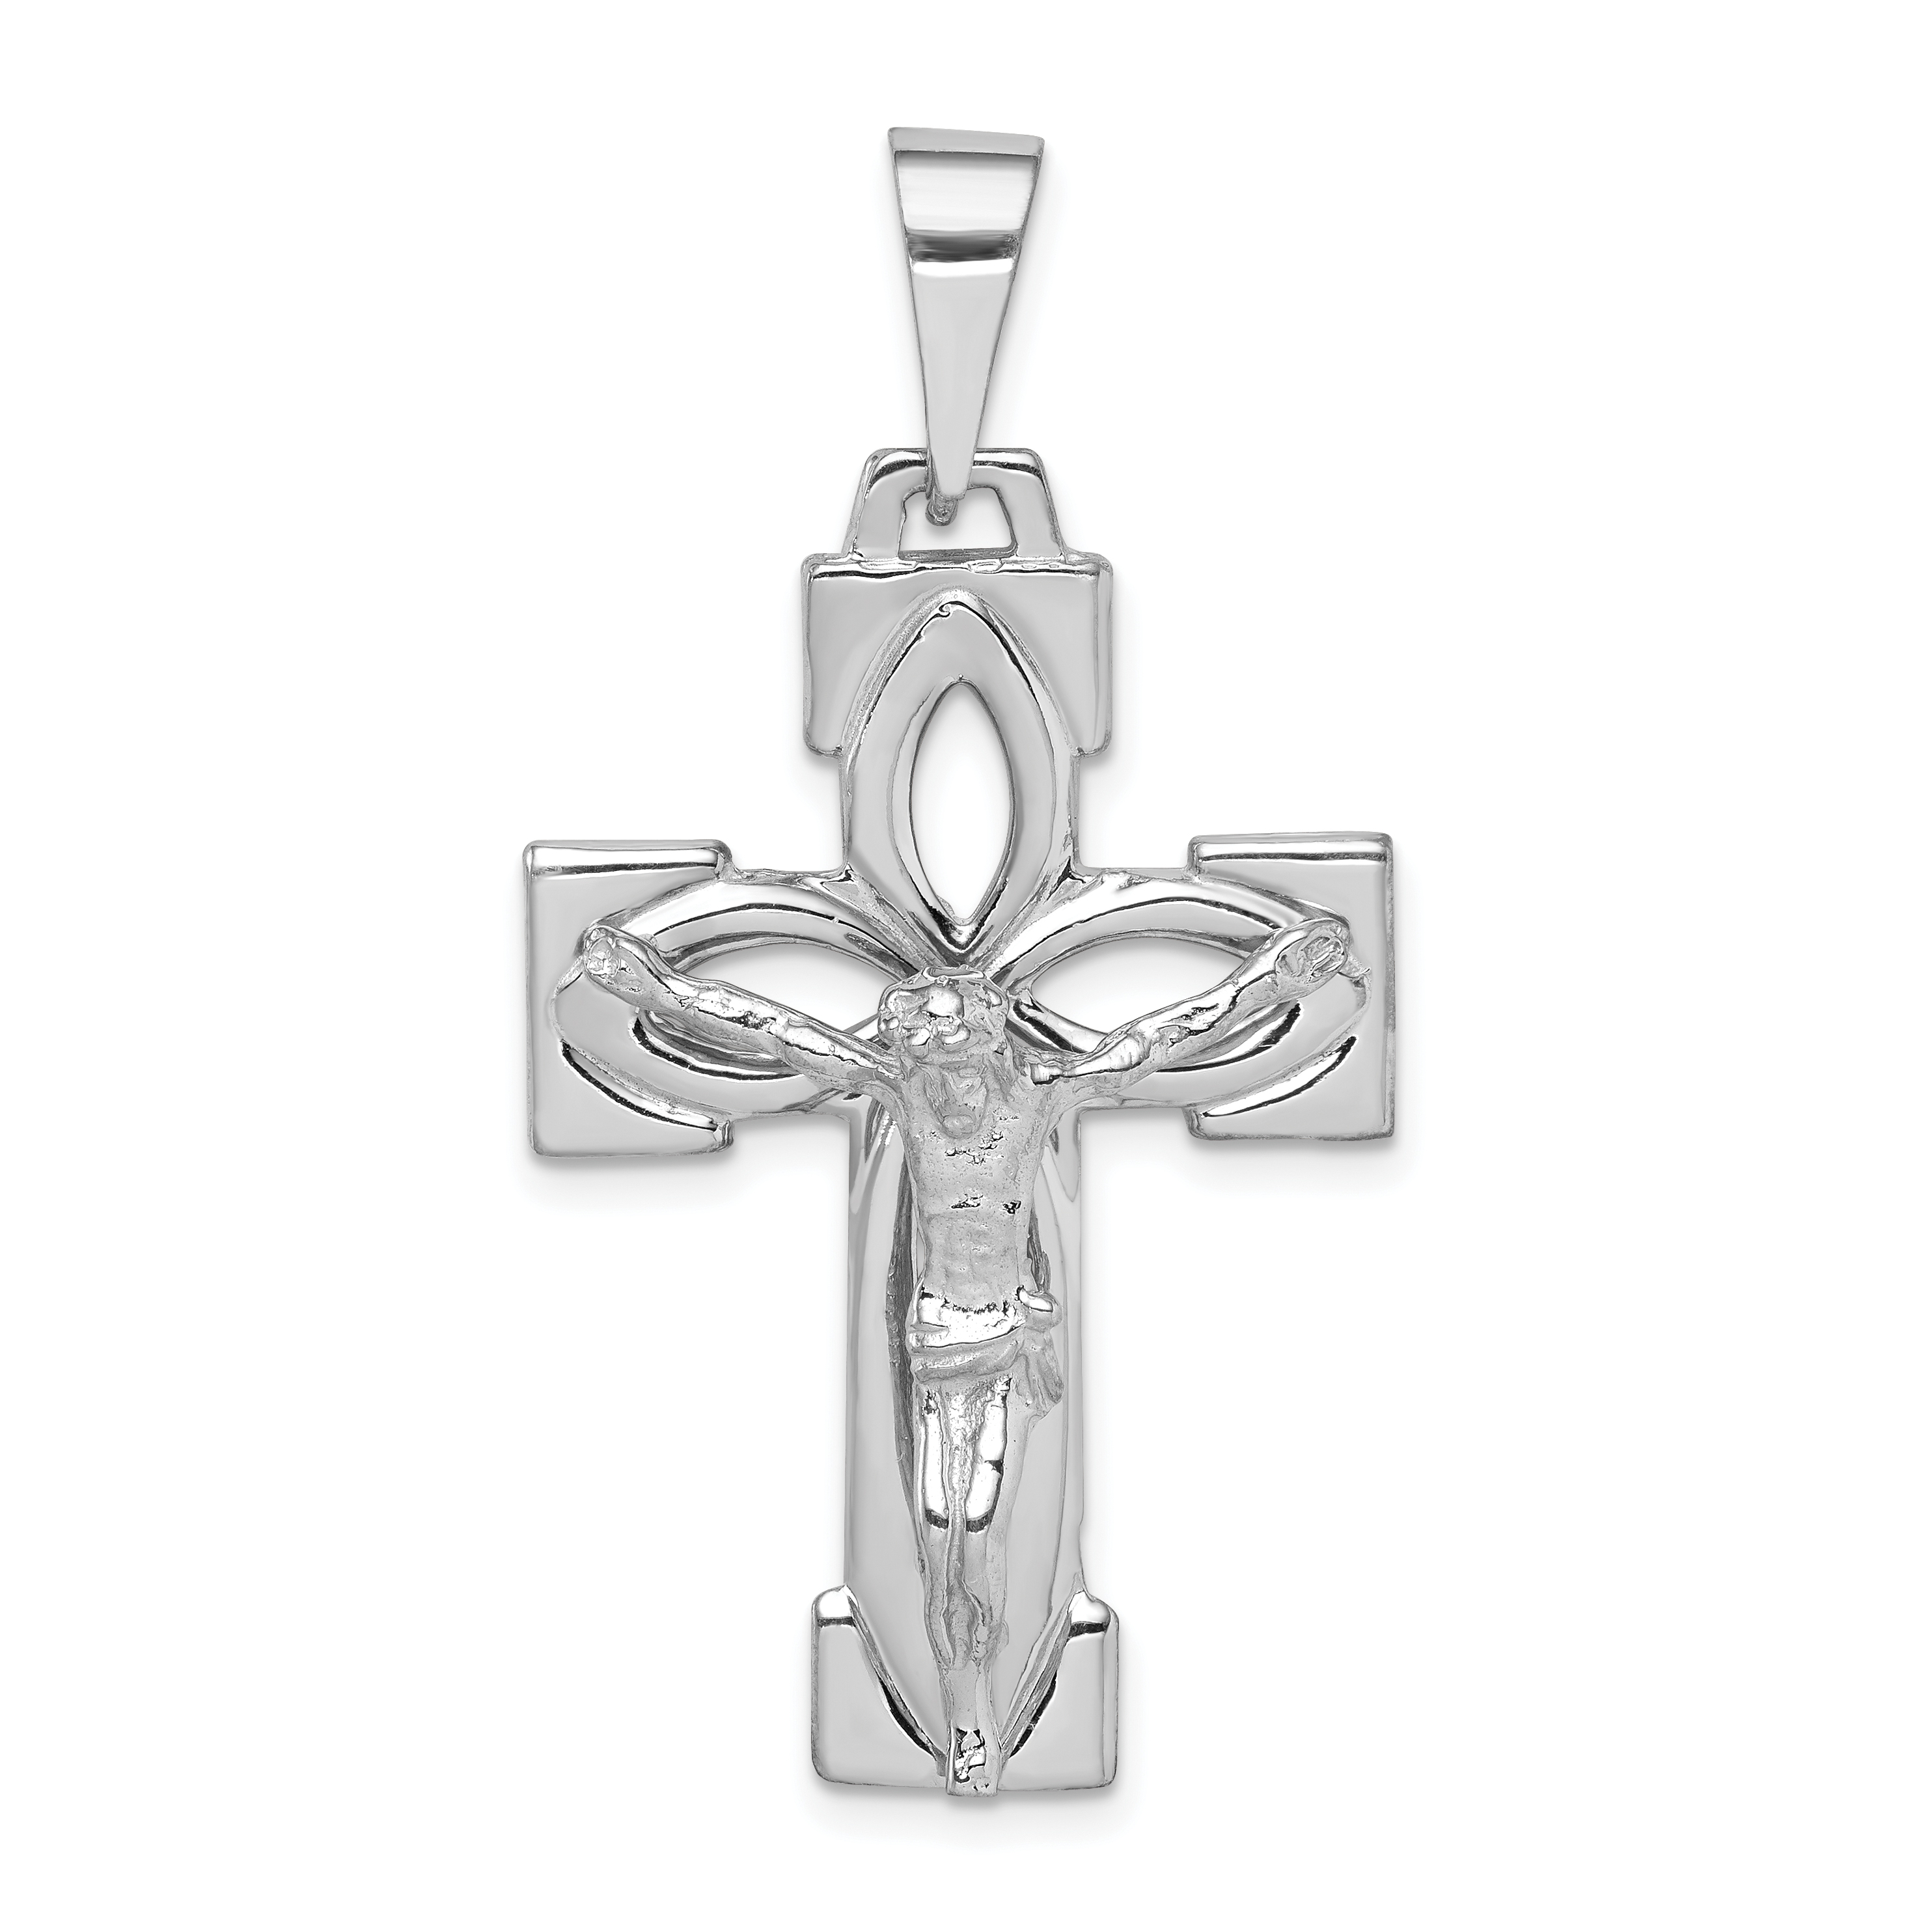 White gold crucifix pendant weight 506 length 48 width 25 14k white gold crucifix pendant weight 506 length 48 width 25 aloadofball Image collections